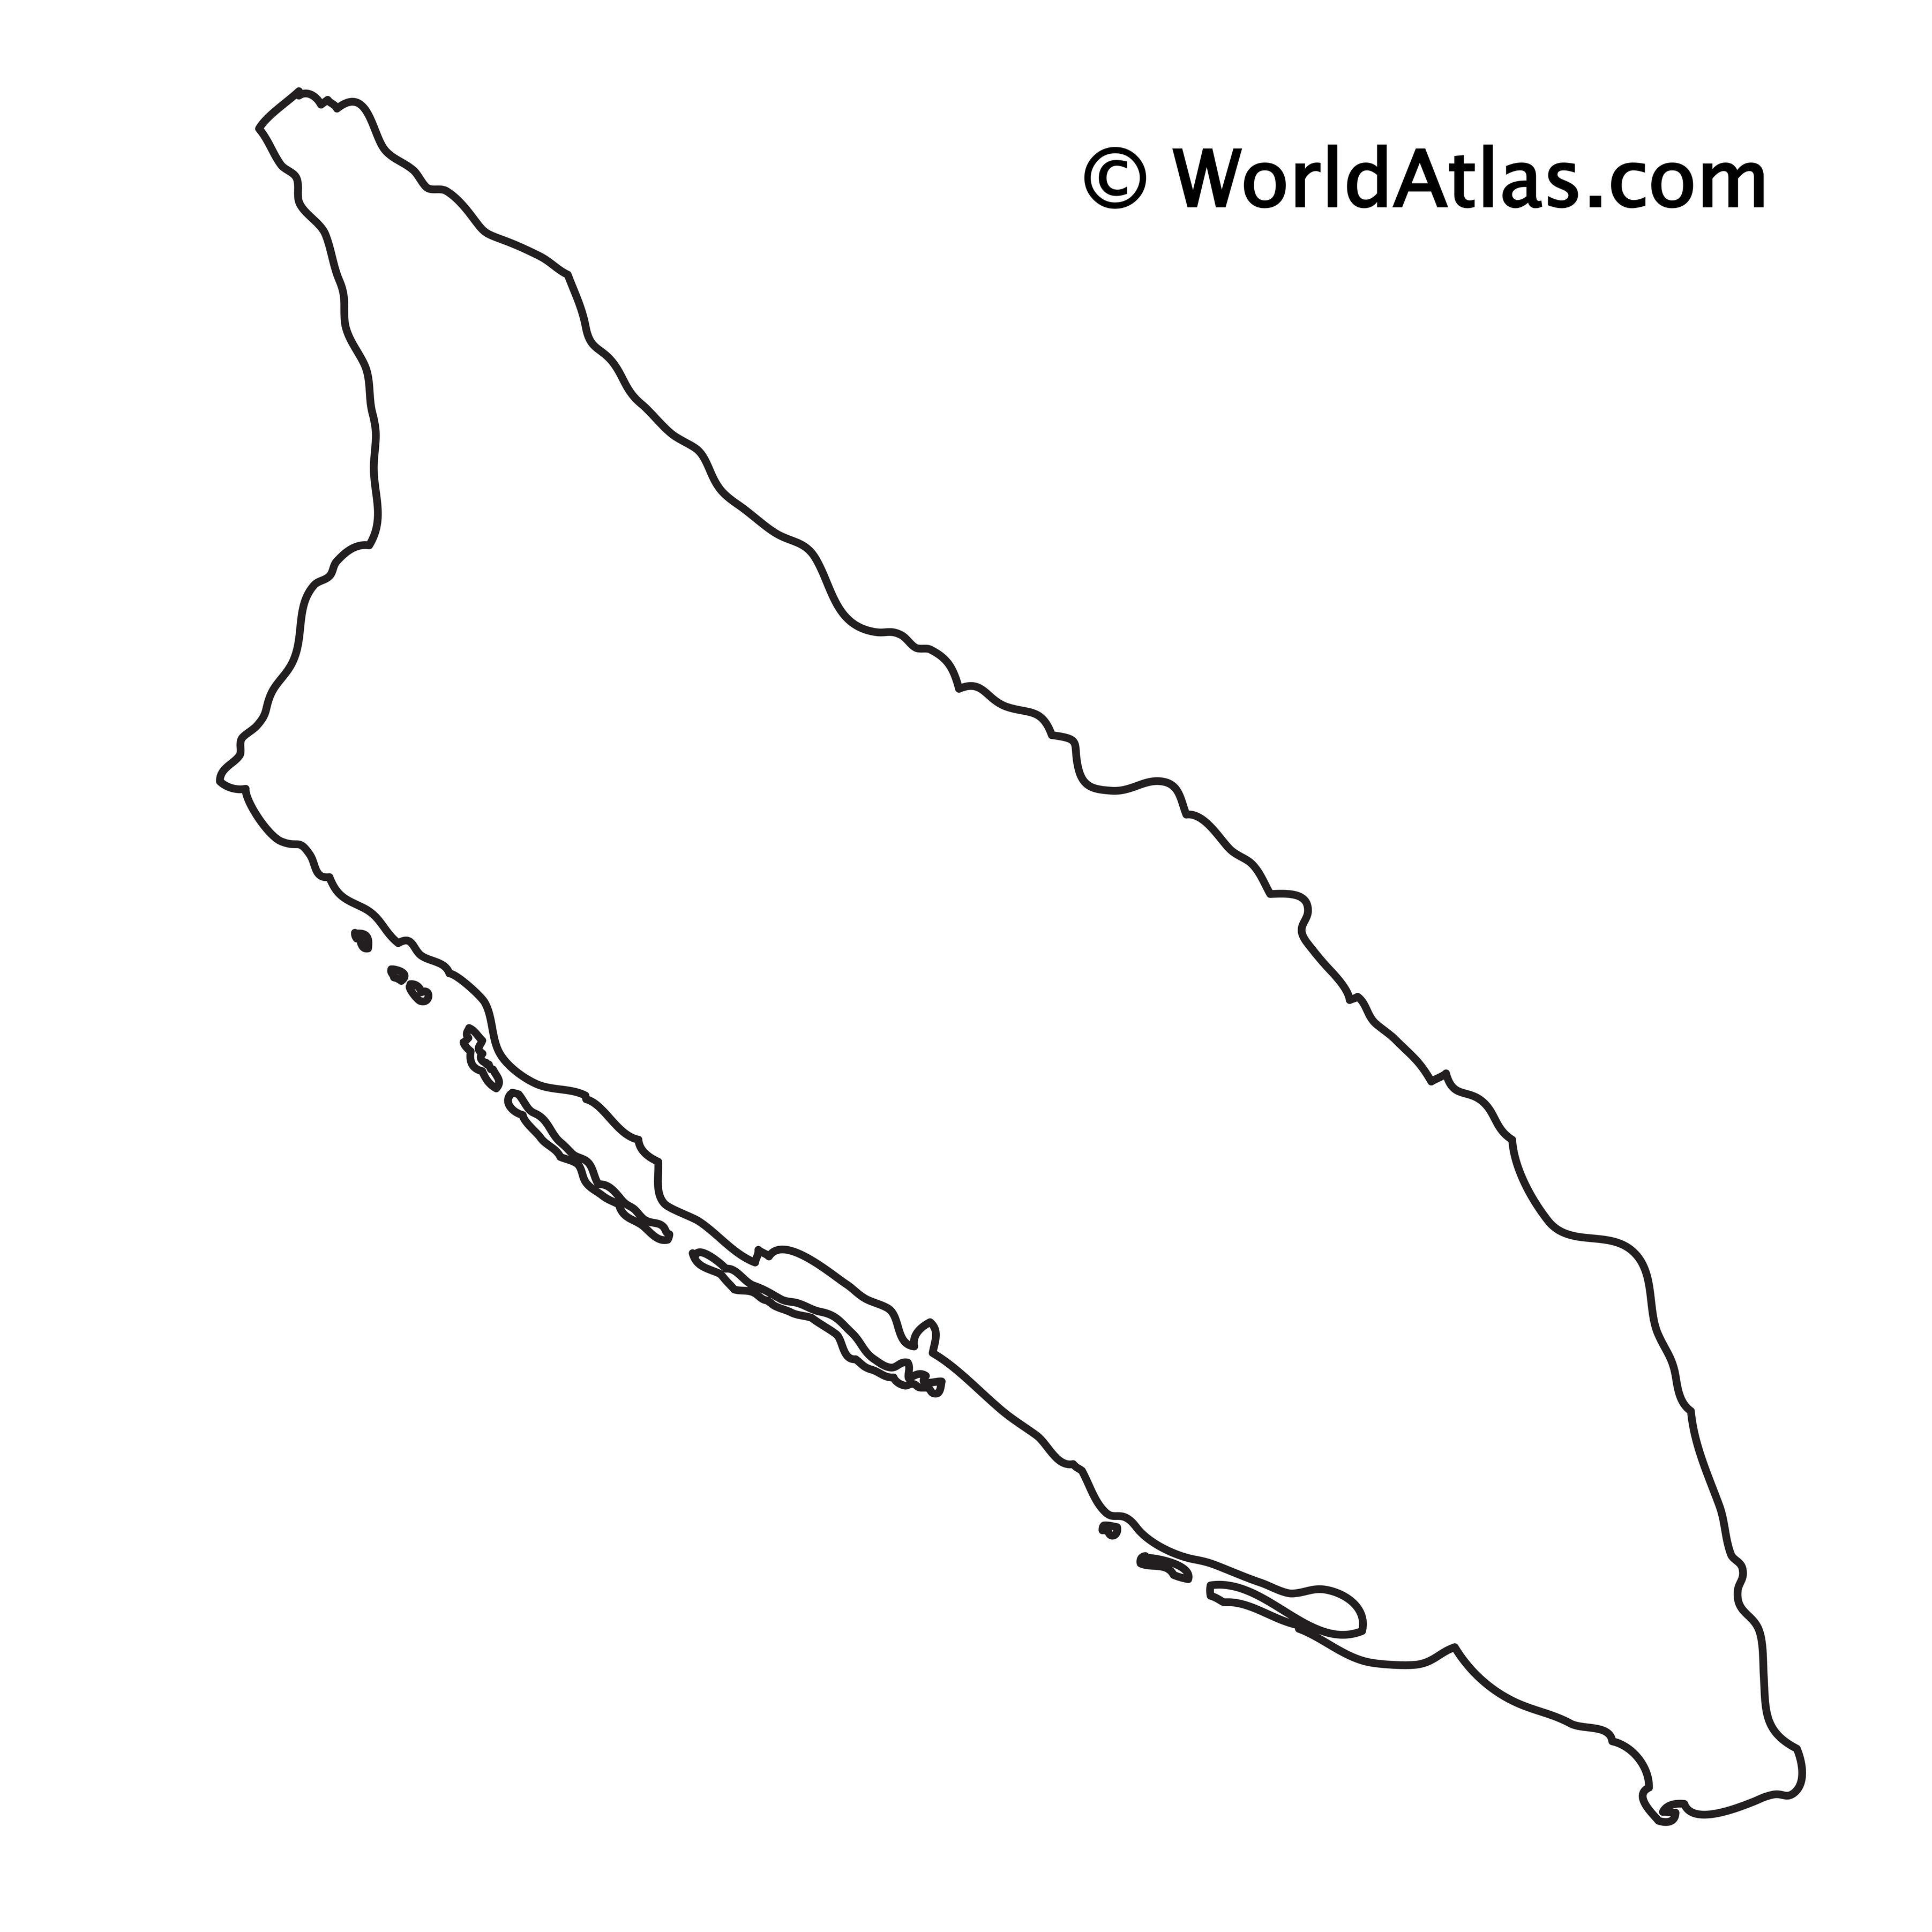 Blank outline map of Aruba